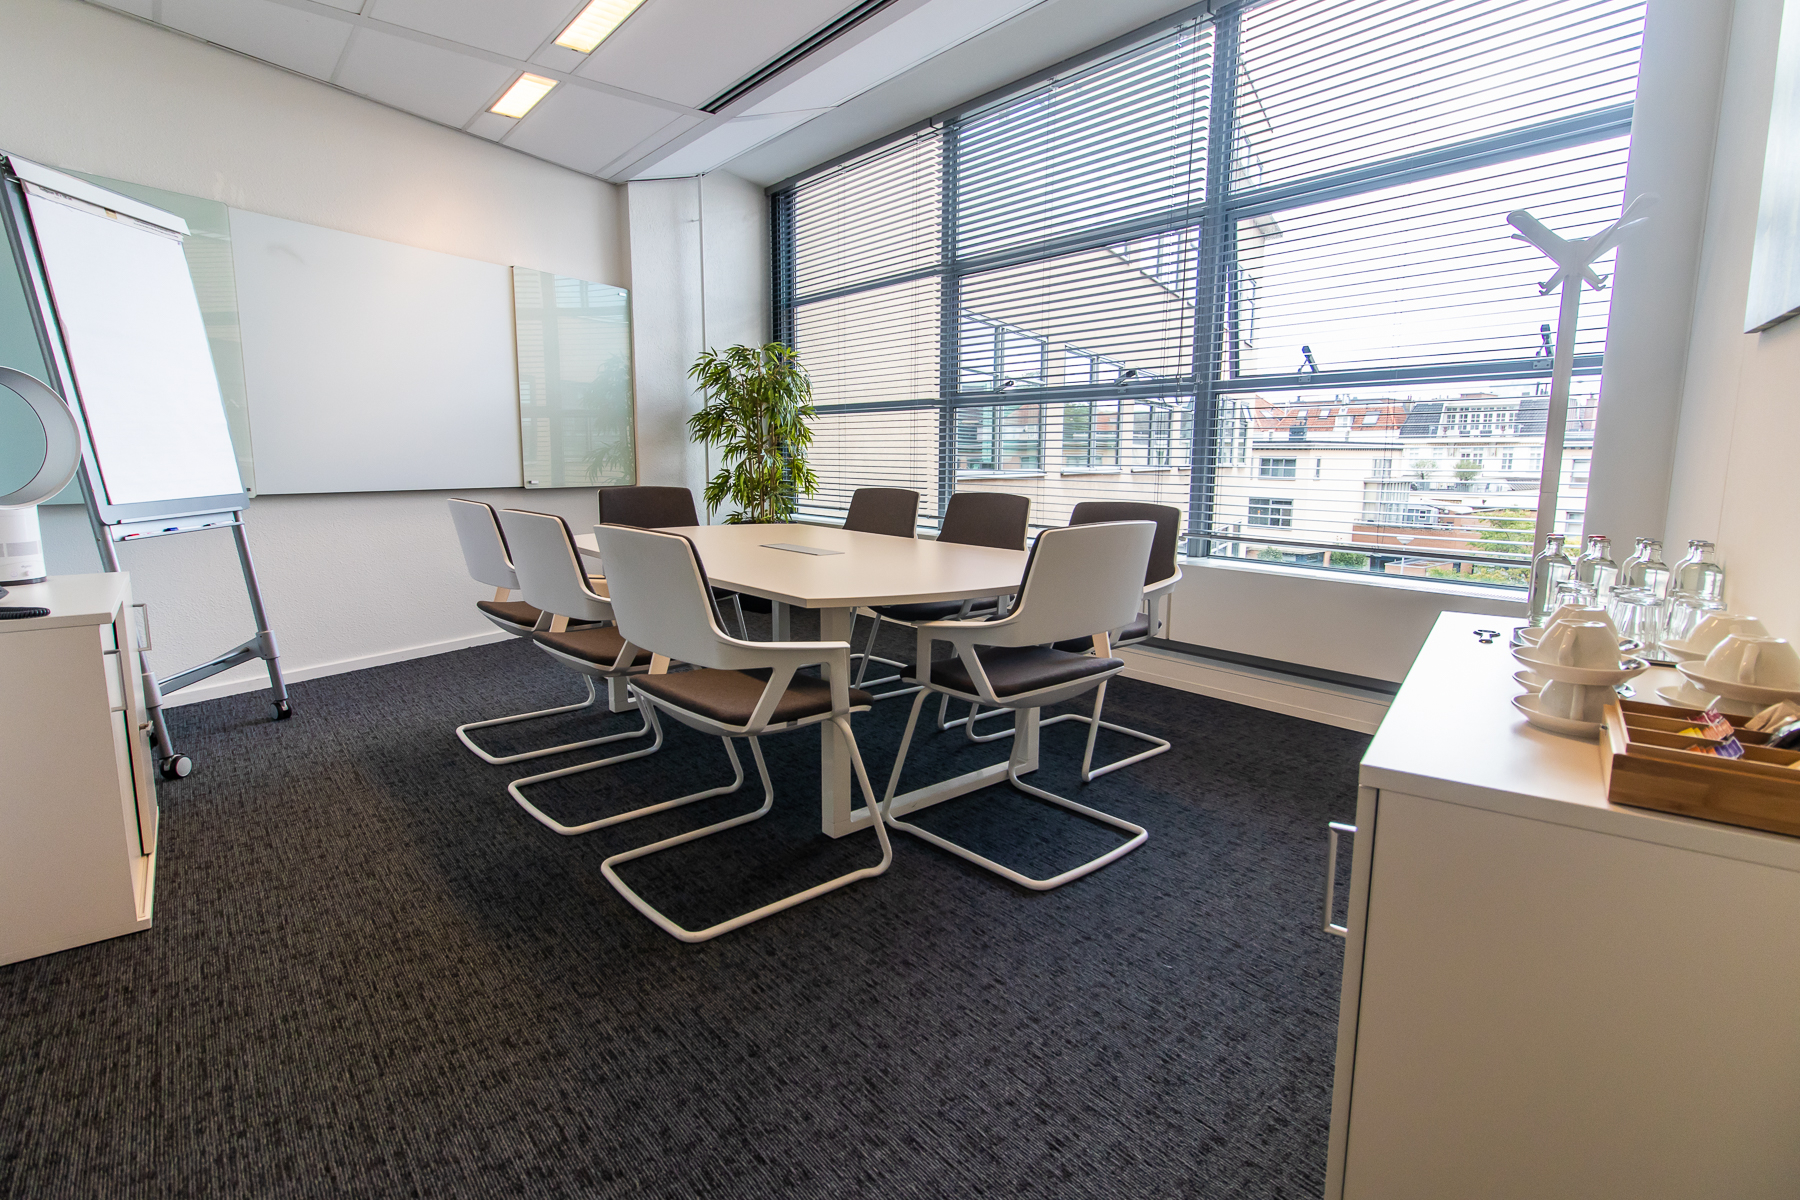 Several meeting rooms available in the building